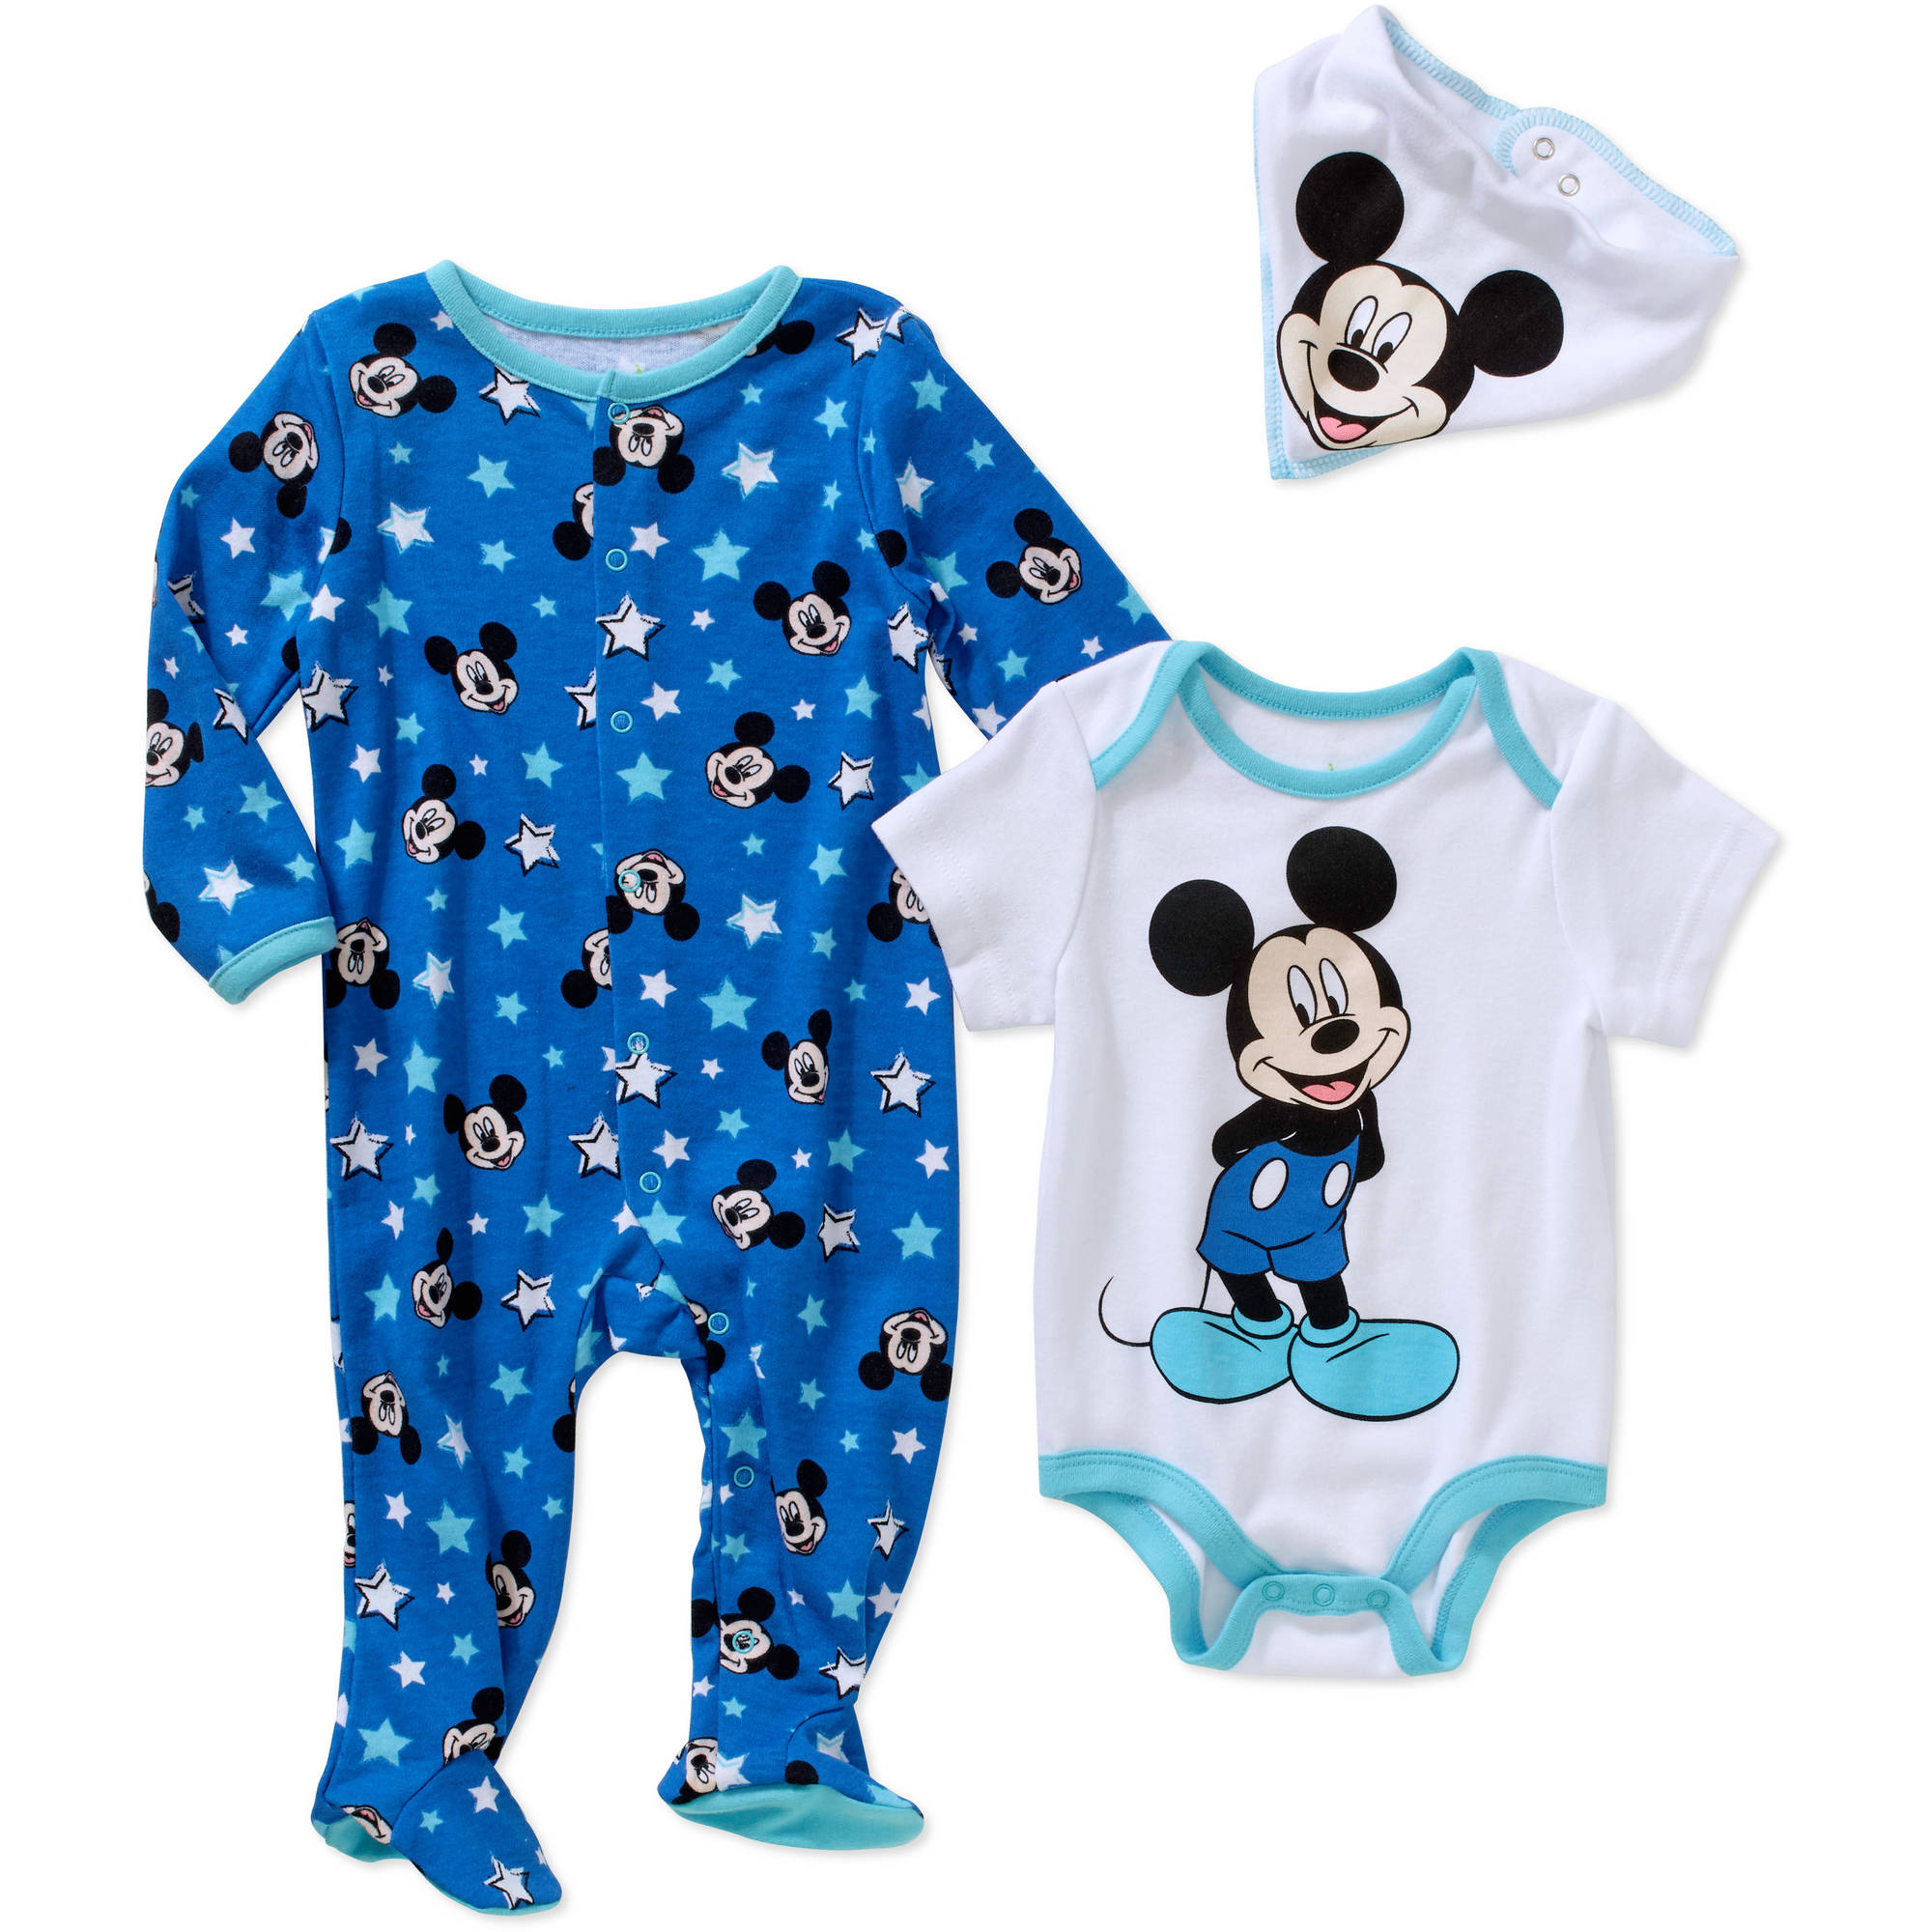 Mickey Mouse Newborn Baby Boy 3-Piece Layette Set